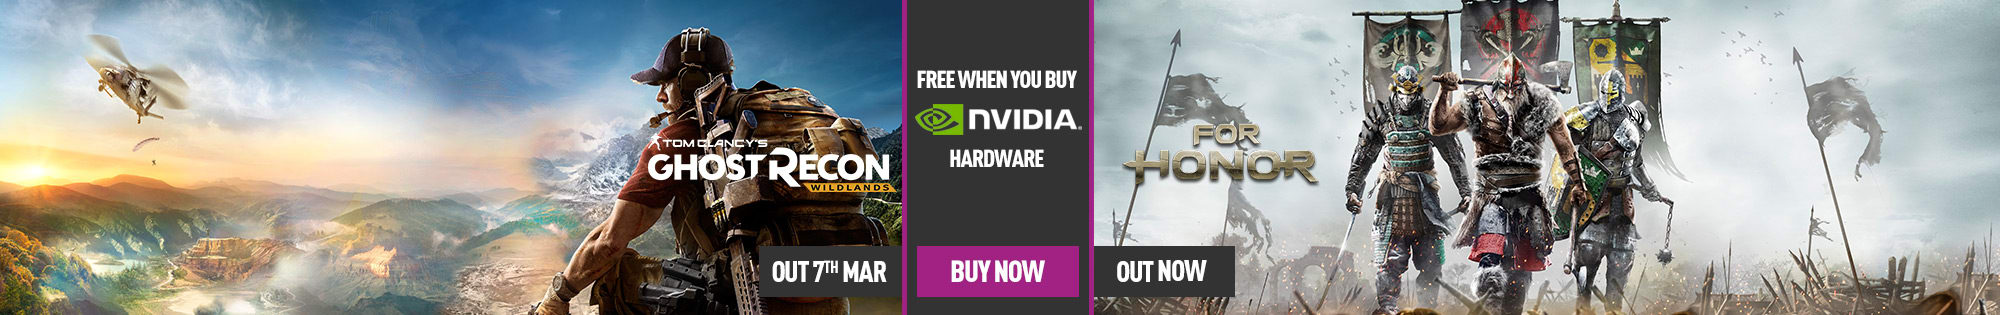 For Honor or Tom Clancy's Ghost Recon Wildlands Free When You Buy Select Nvidia GeForce 10 Series Hardware